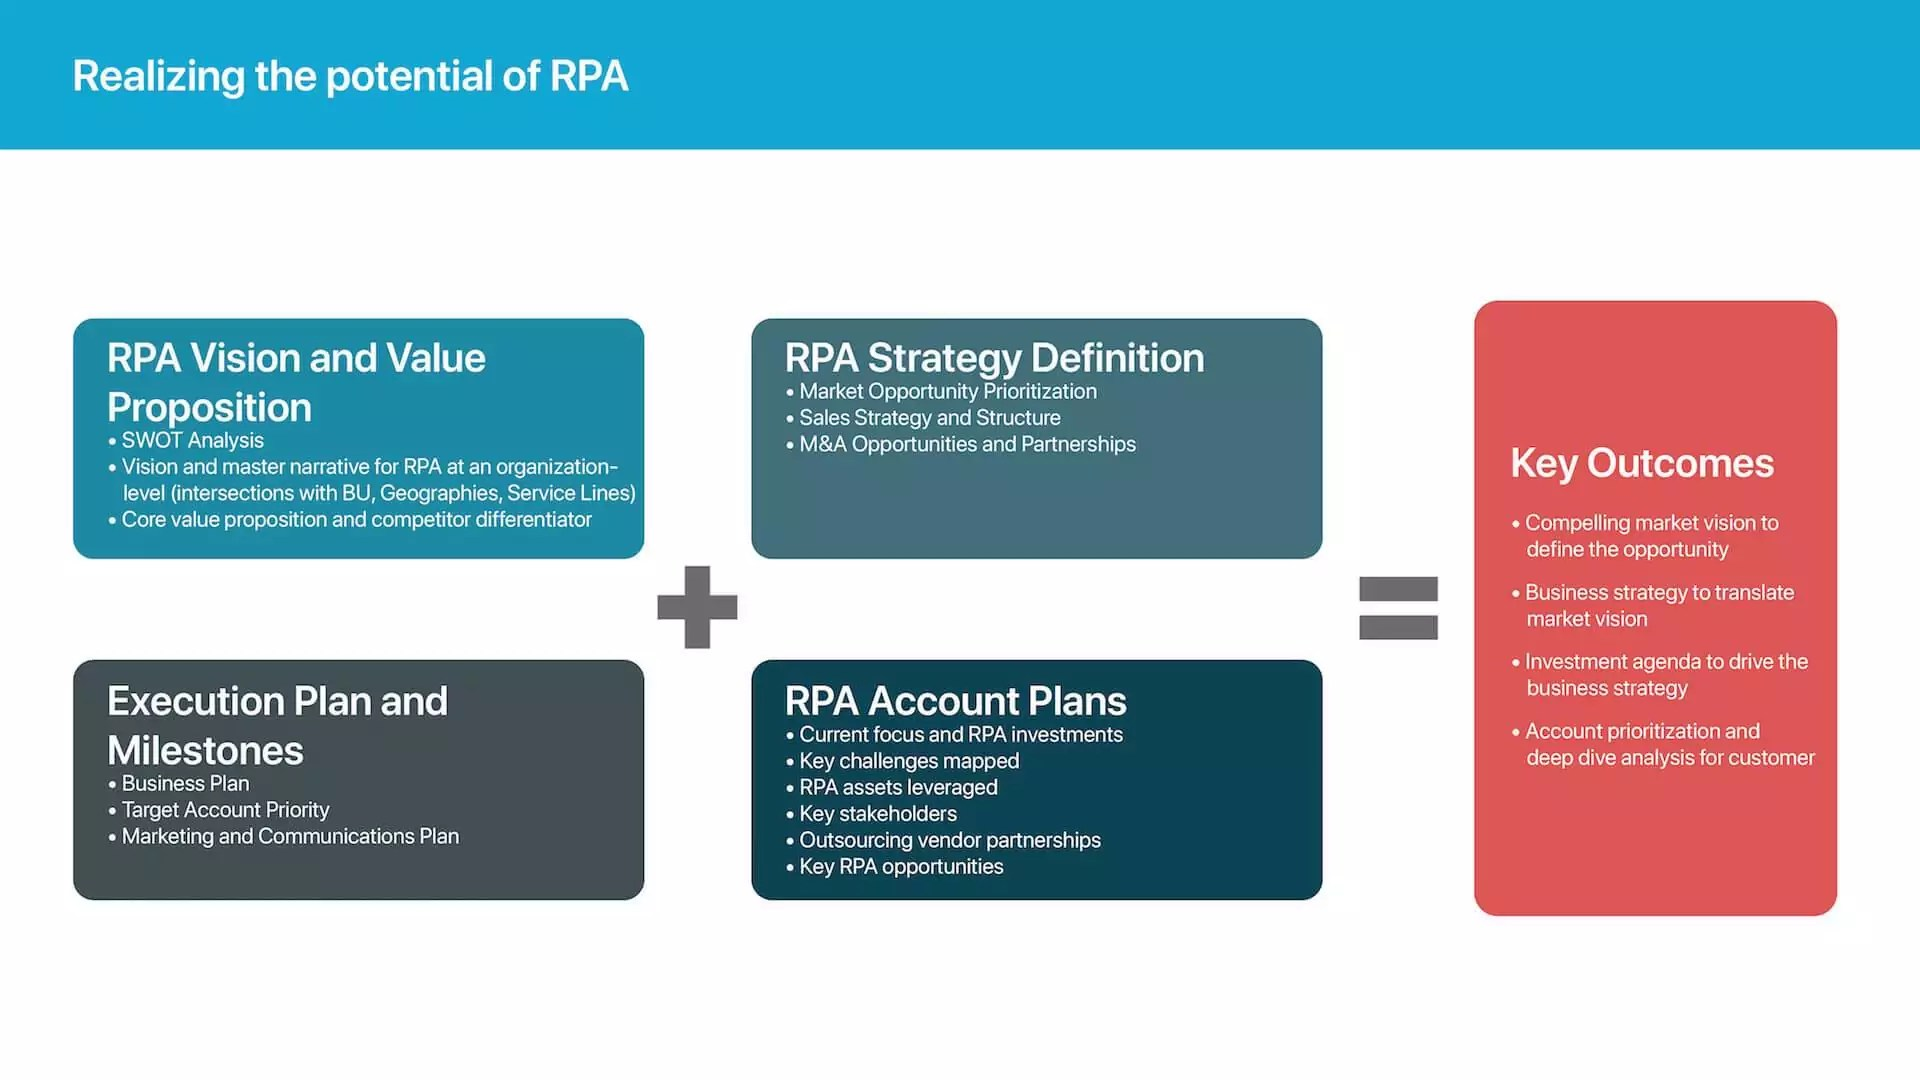 RPA Strategy